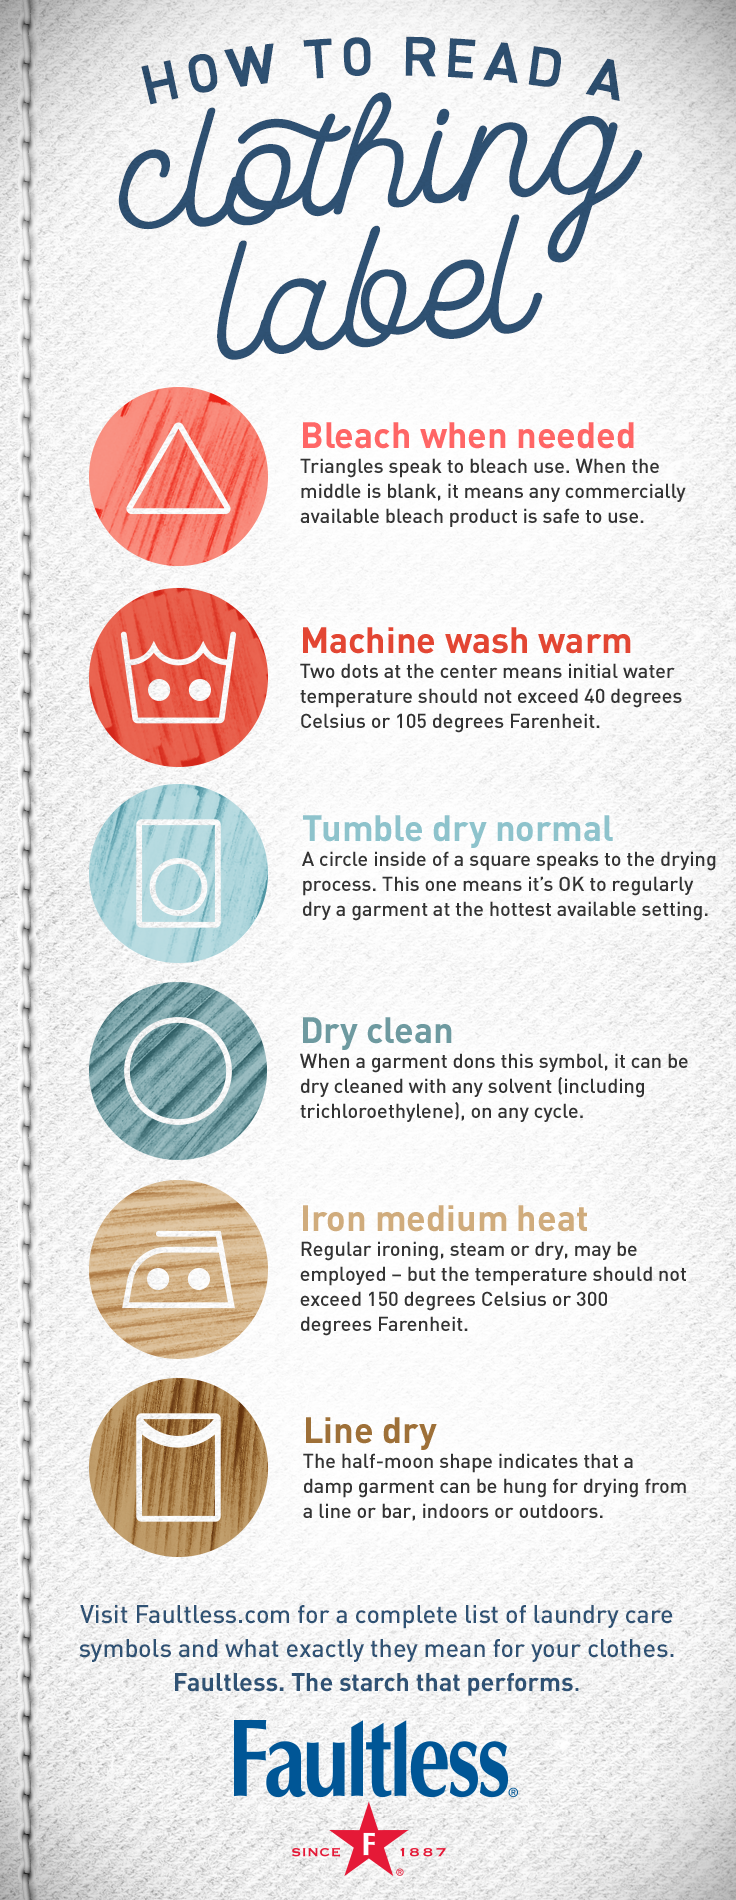 Learn How To Read A Clothing Label With This Easy Laundry Guide